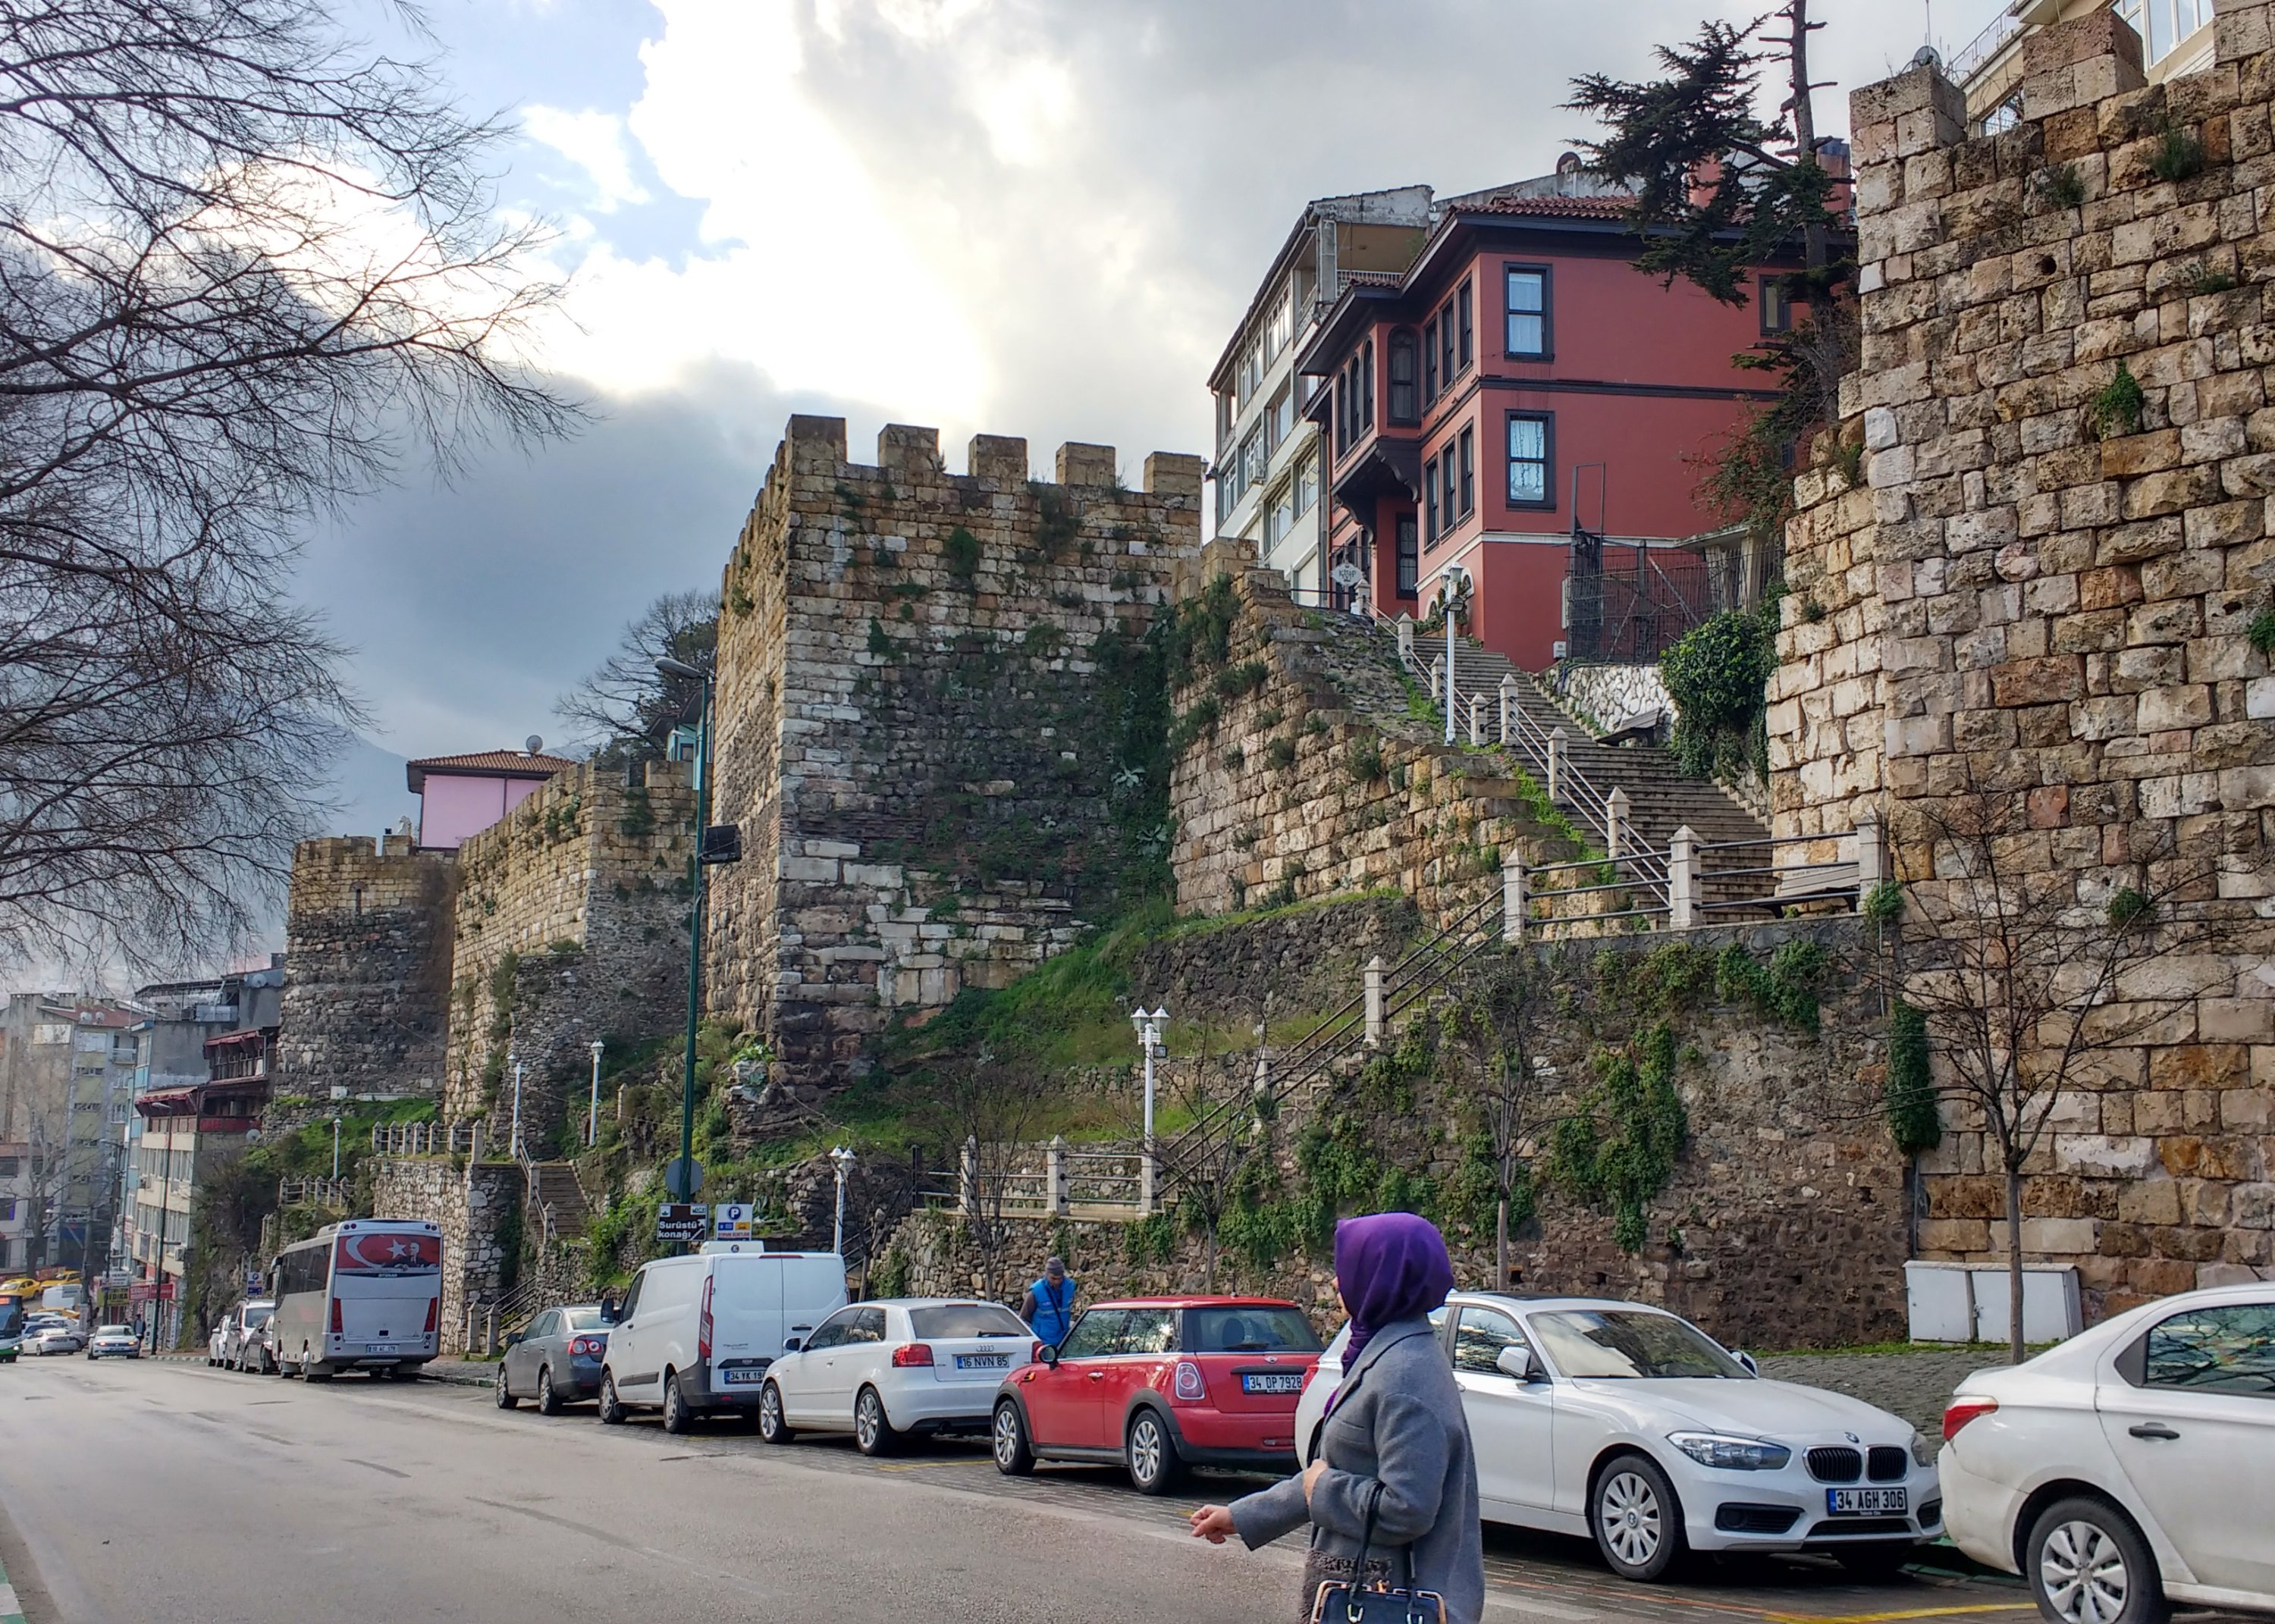 A woman walks next to the historic city walls of Bursa, northwestern Turkey, Feb. 11, 2018. (Gabriela Akpaça / Daily Sabah)